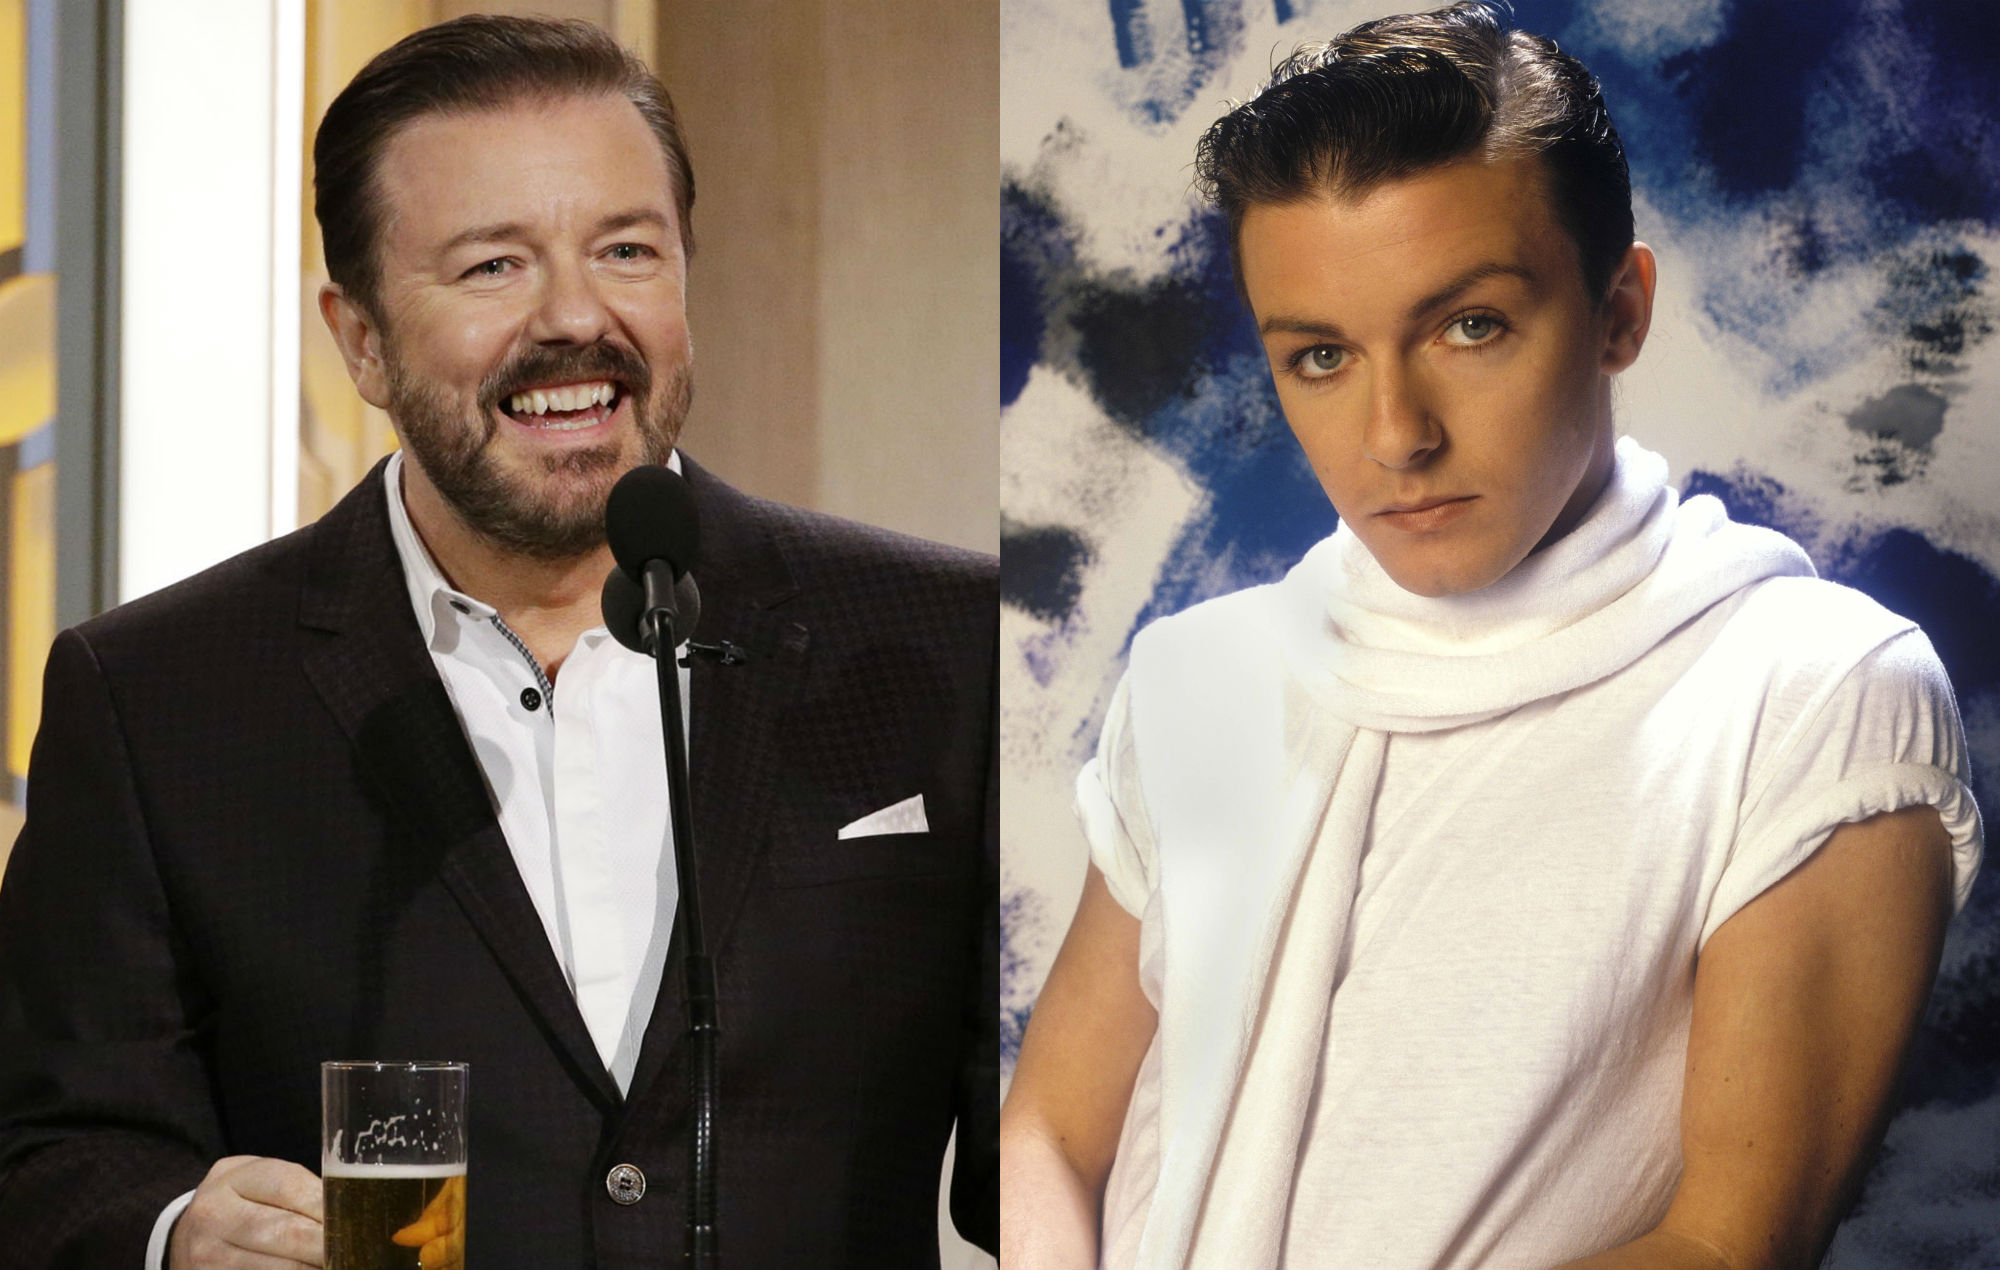 Ricky Gervais on giving up on his rockstar dreams - NME